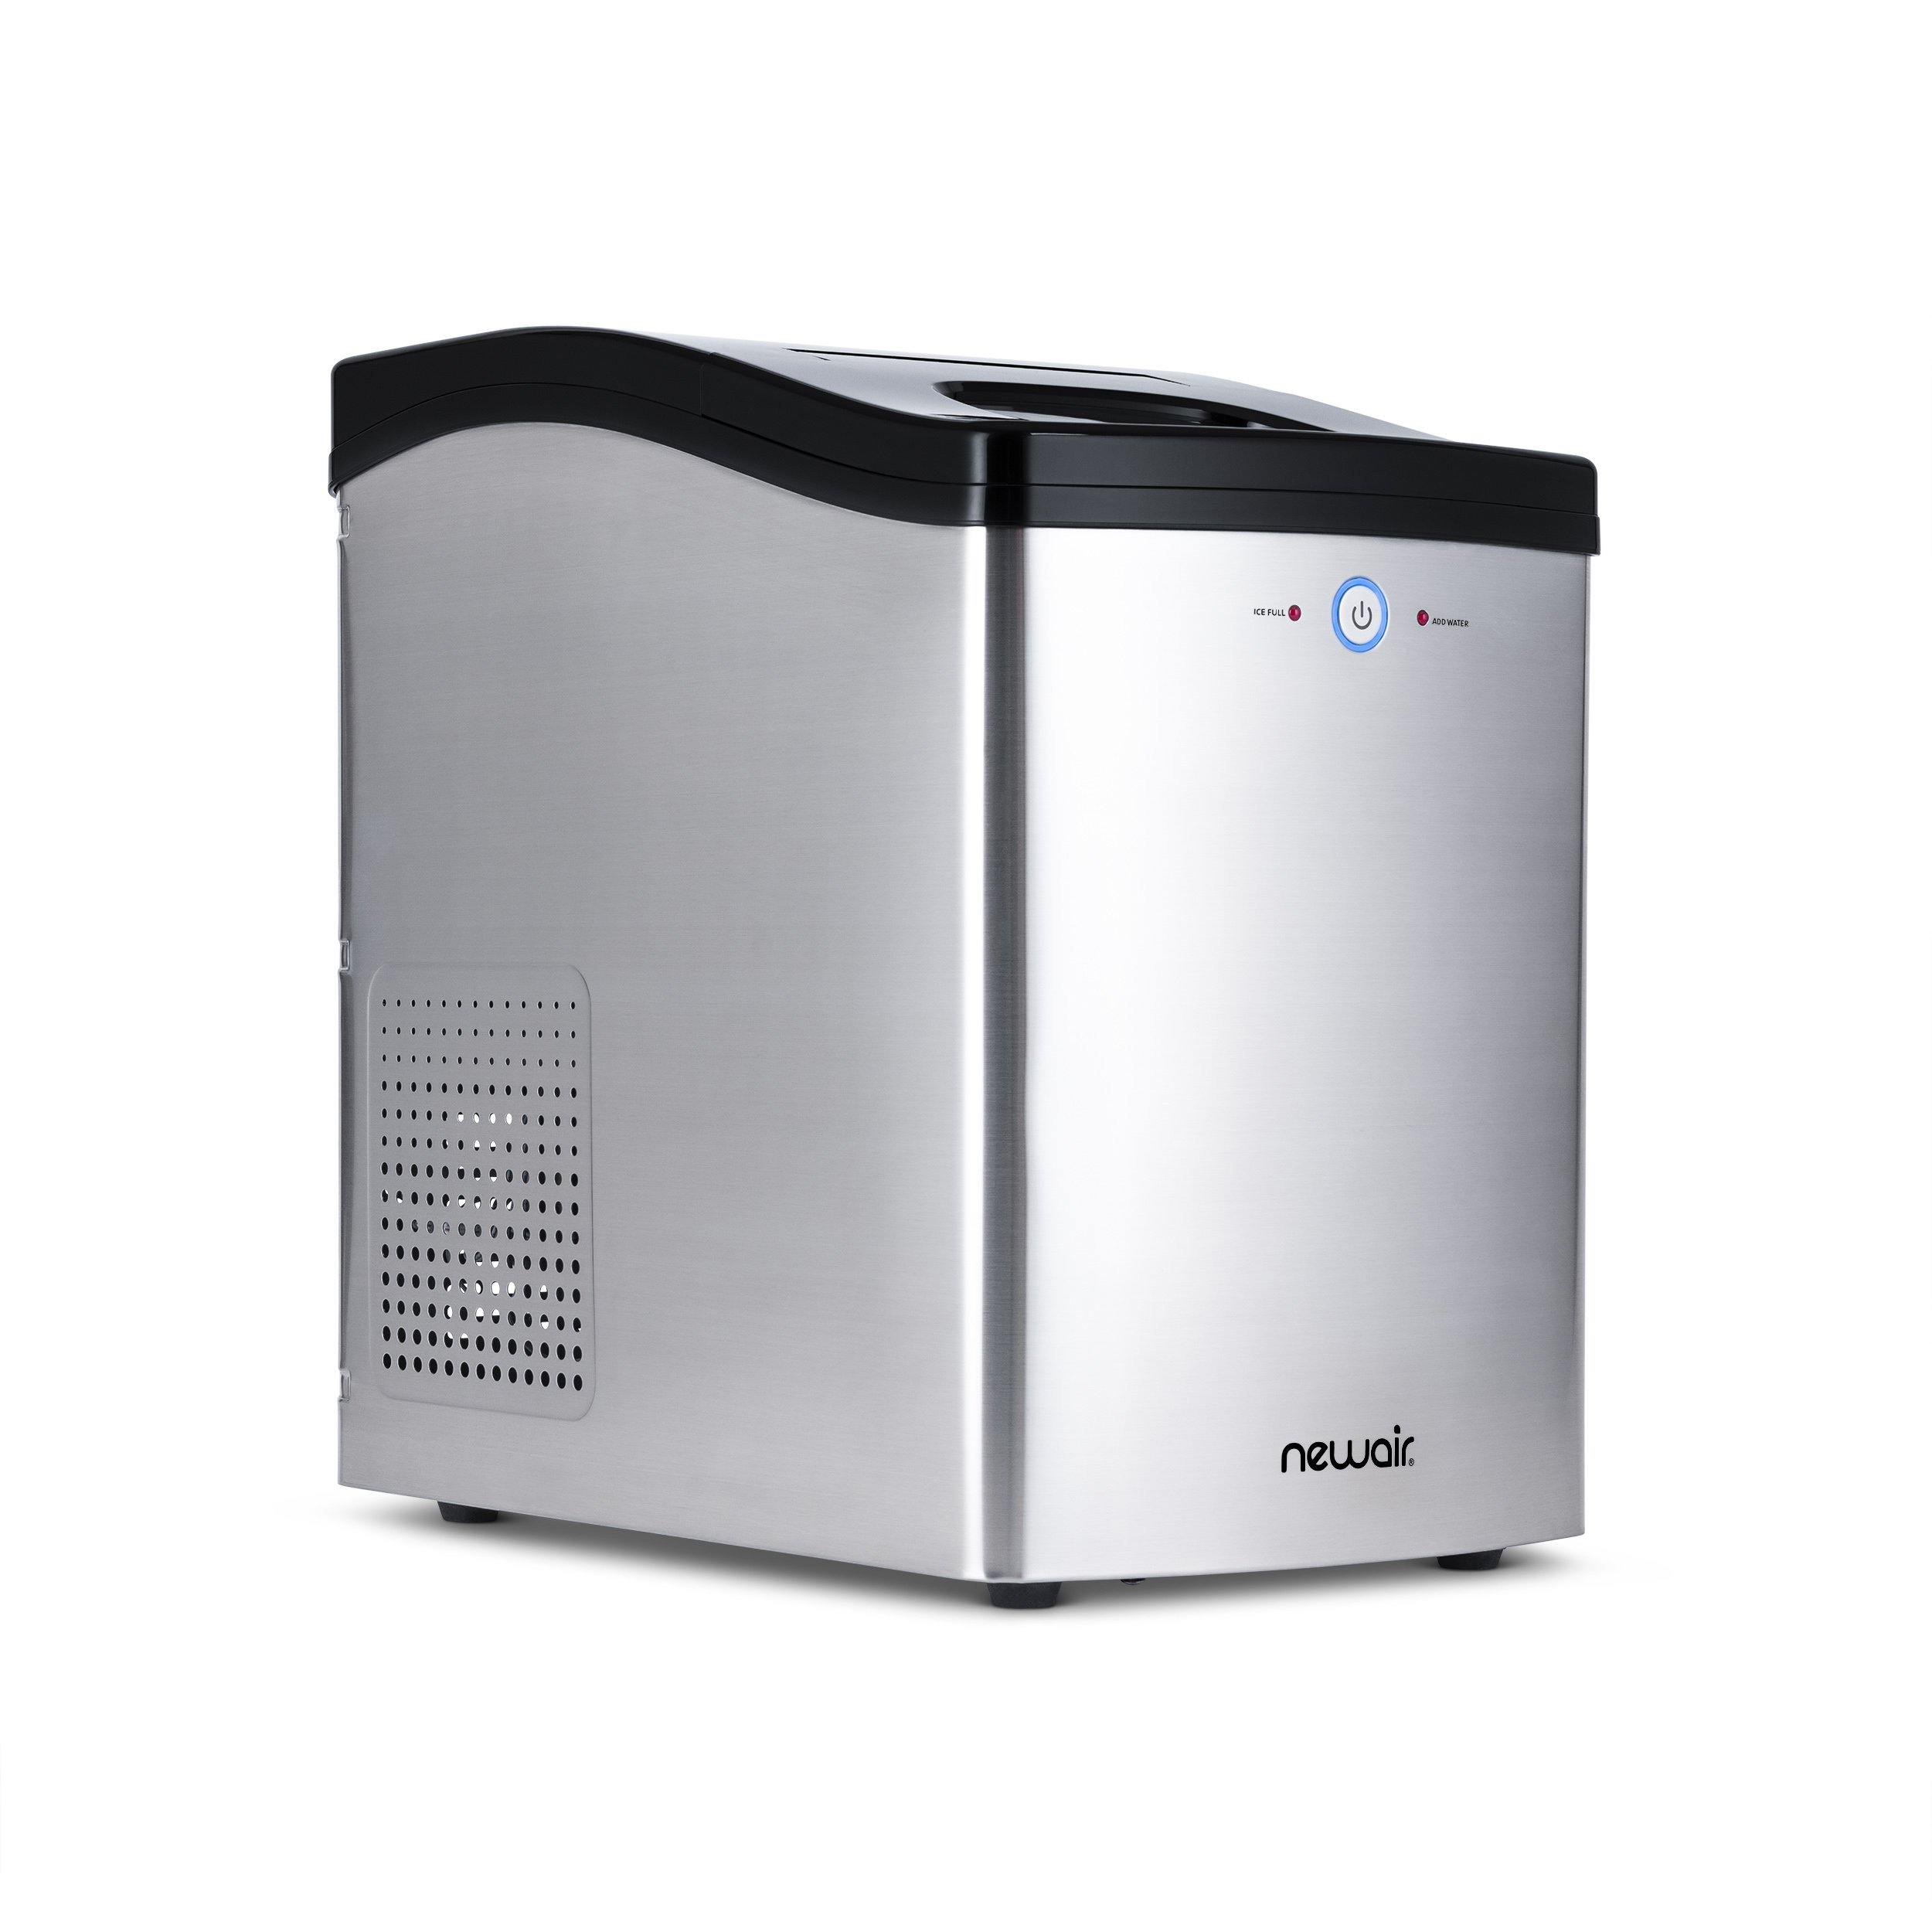 Newair Countertop Nugget Ice Maker In Stainless Steel 40 Lbs Of Ice